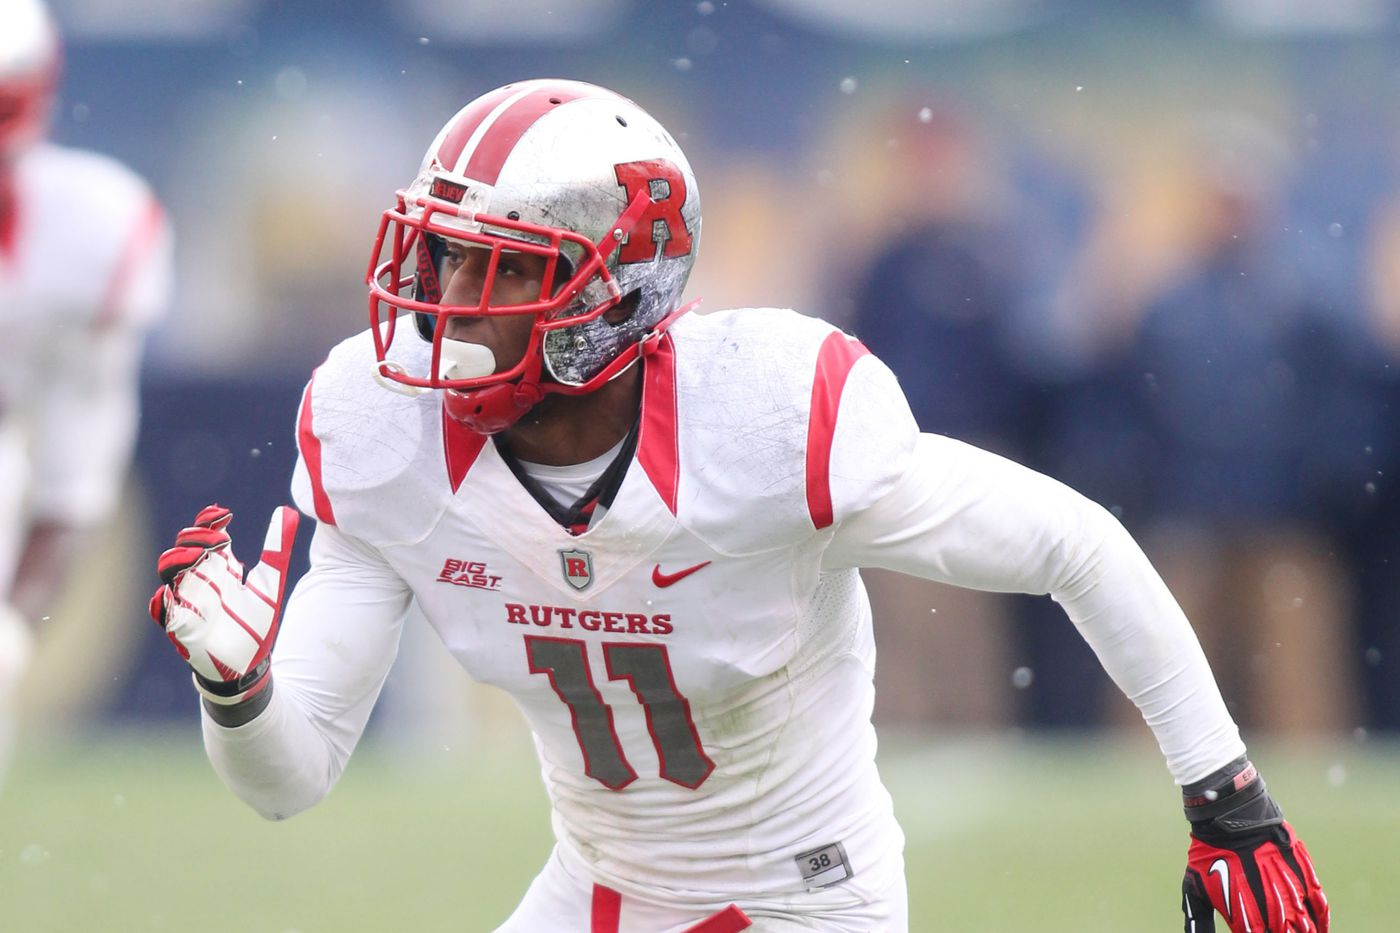 NFL mock draft 2013: Is cornerback a viable option for the